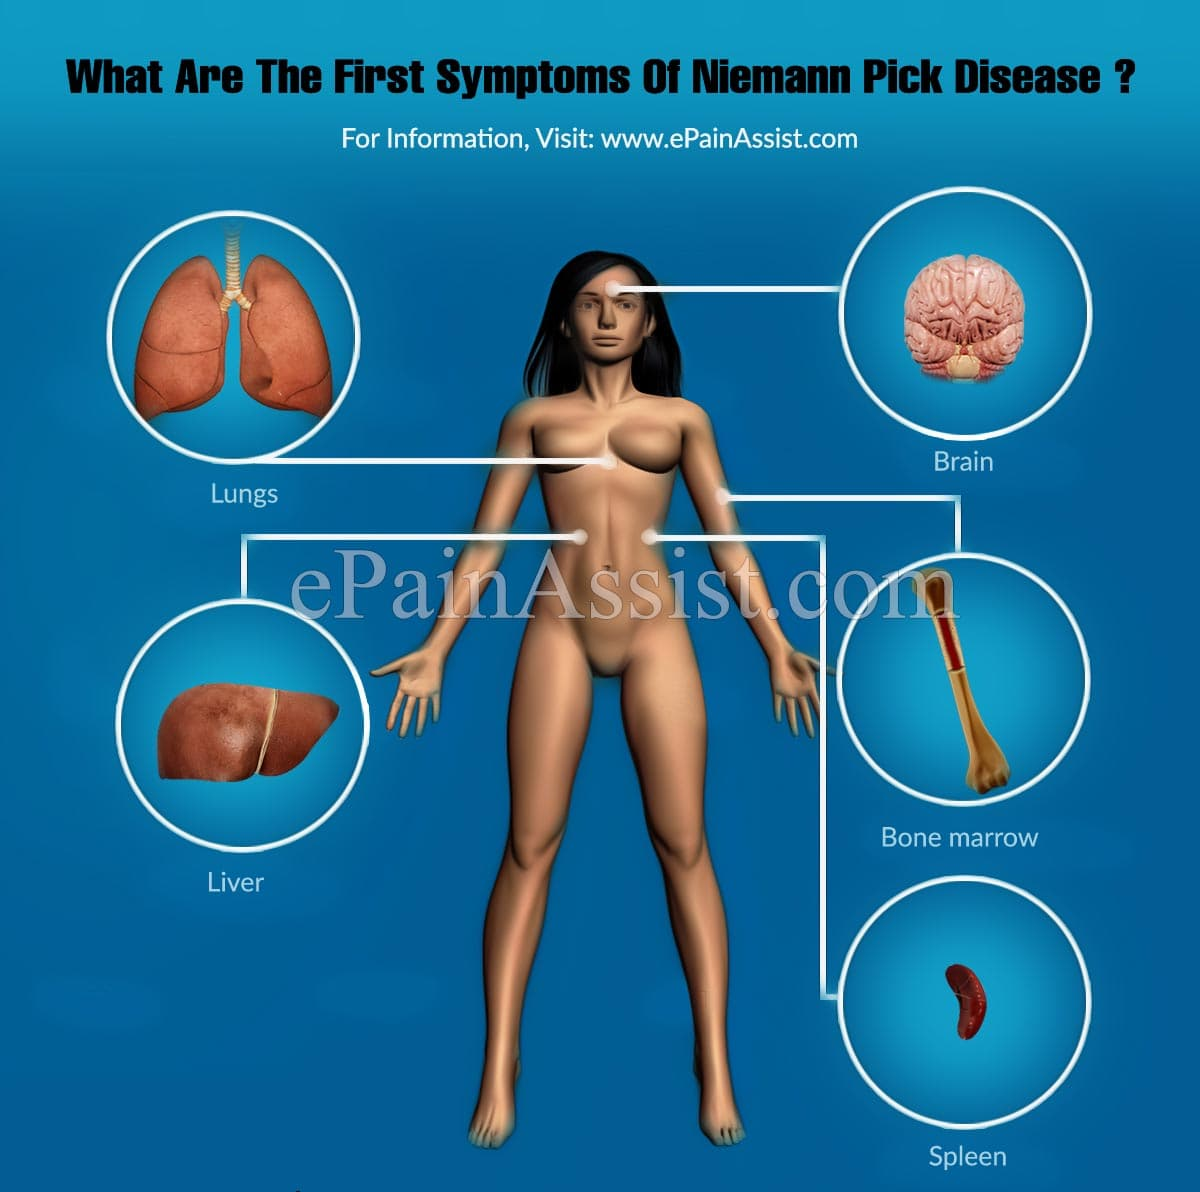 What Are The First Symptoms Of Niemann Pick Disease?